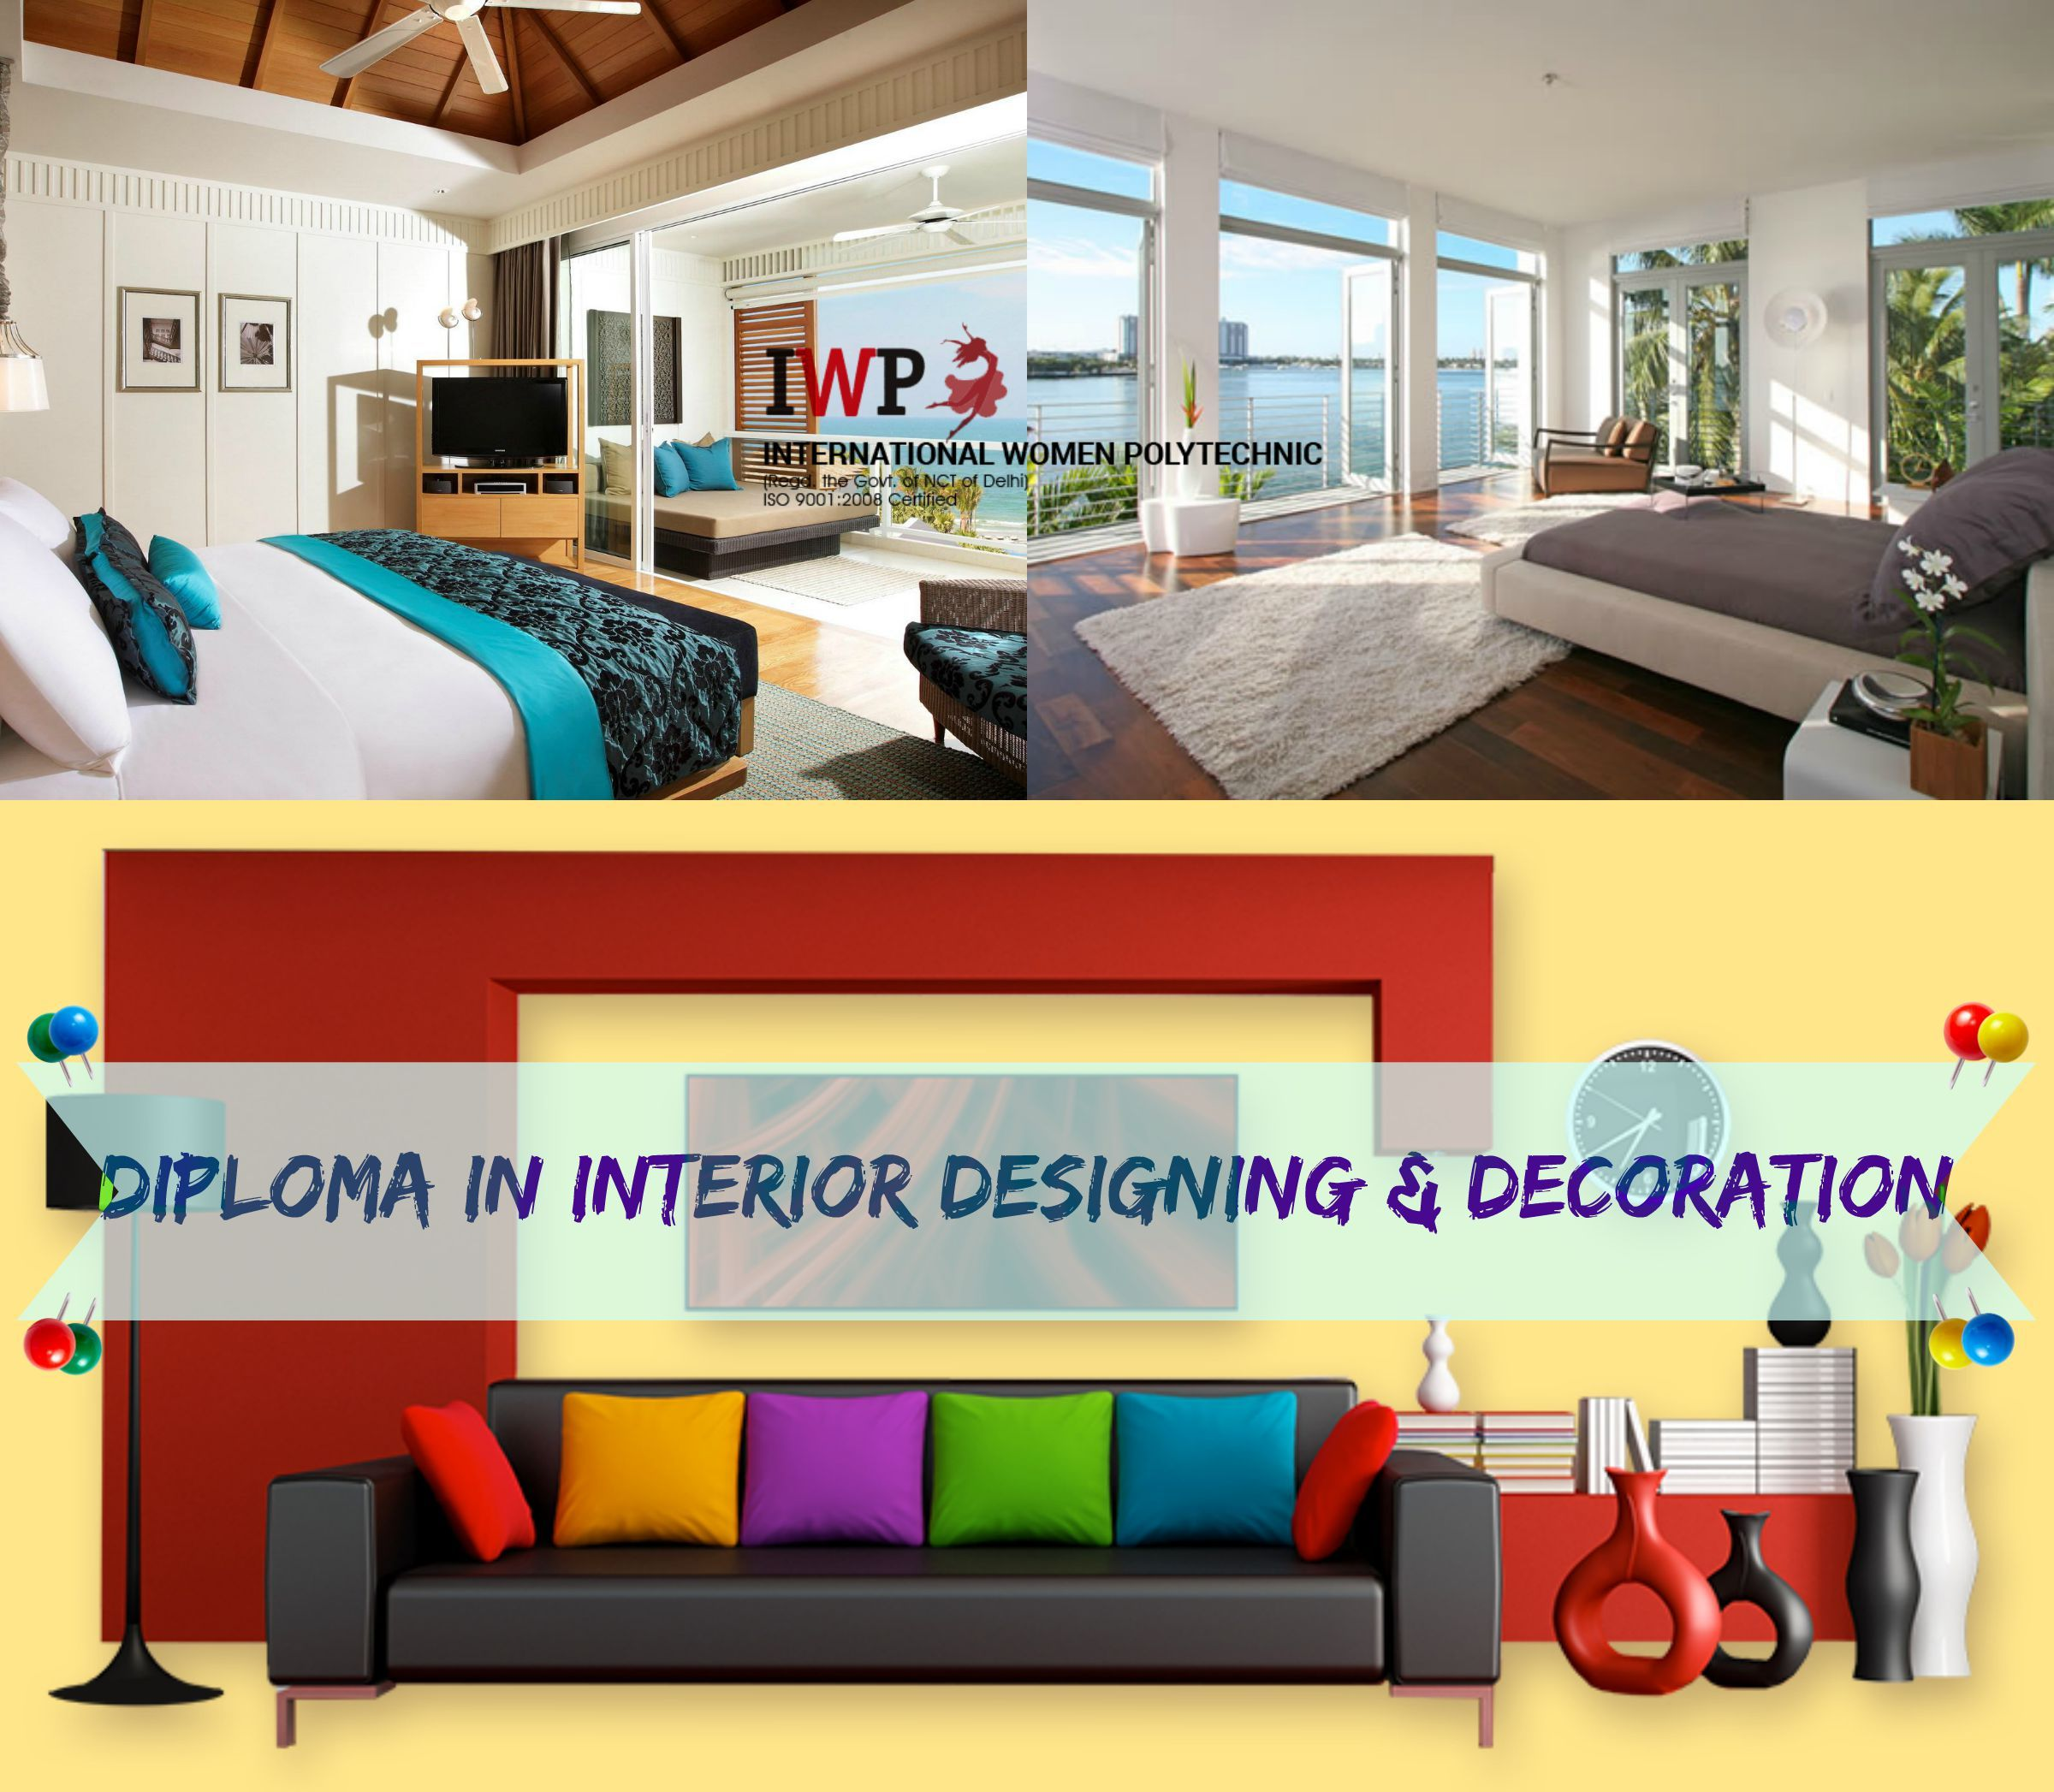 Interior Design Is A Business Of Trust Know More About Interiordesign Diploma Courses Http Www Iwpindiaonline Com Interior De With Images Interior Design Interior